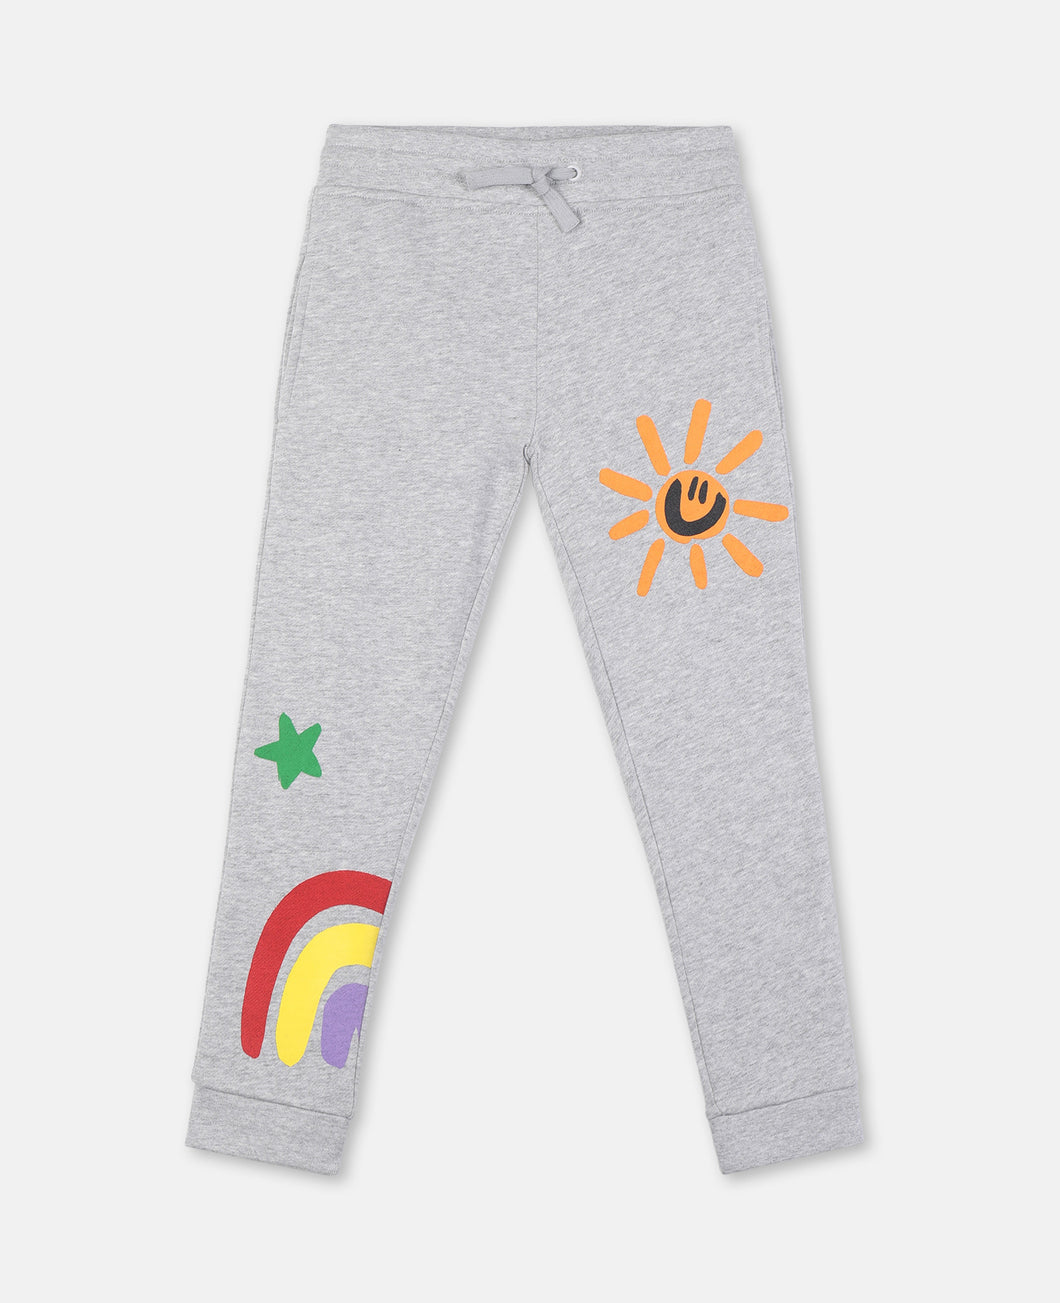 Crayon Weather Print SMC Joggers